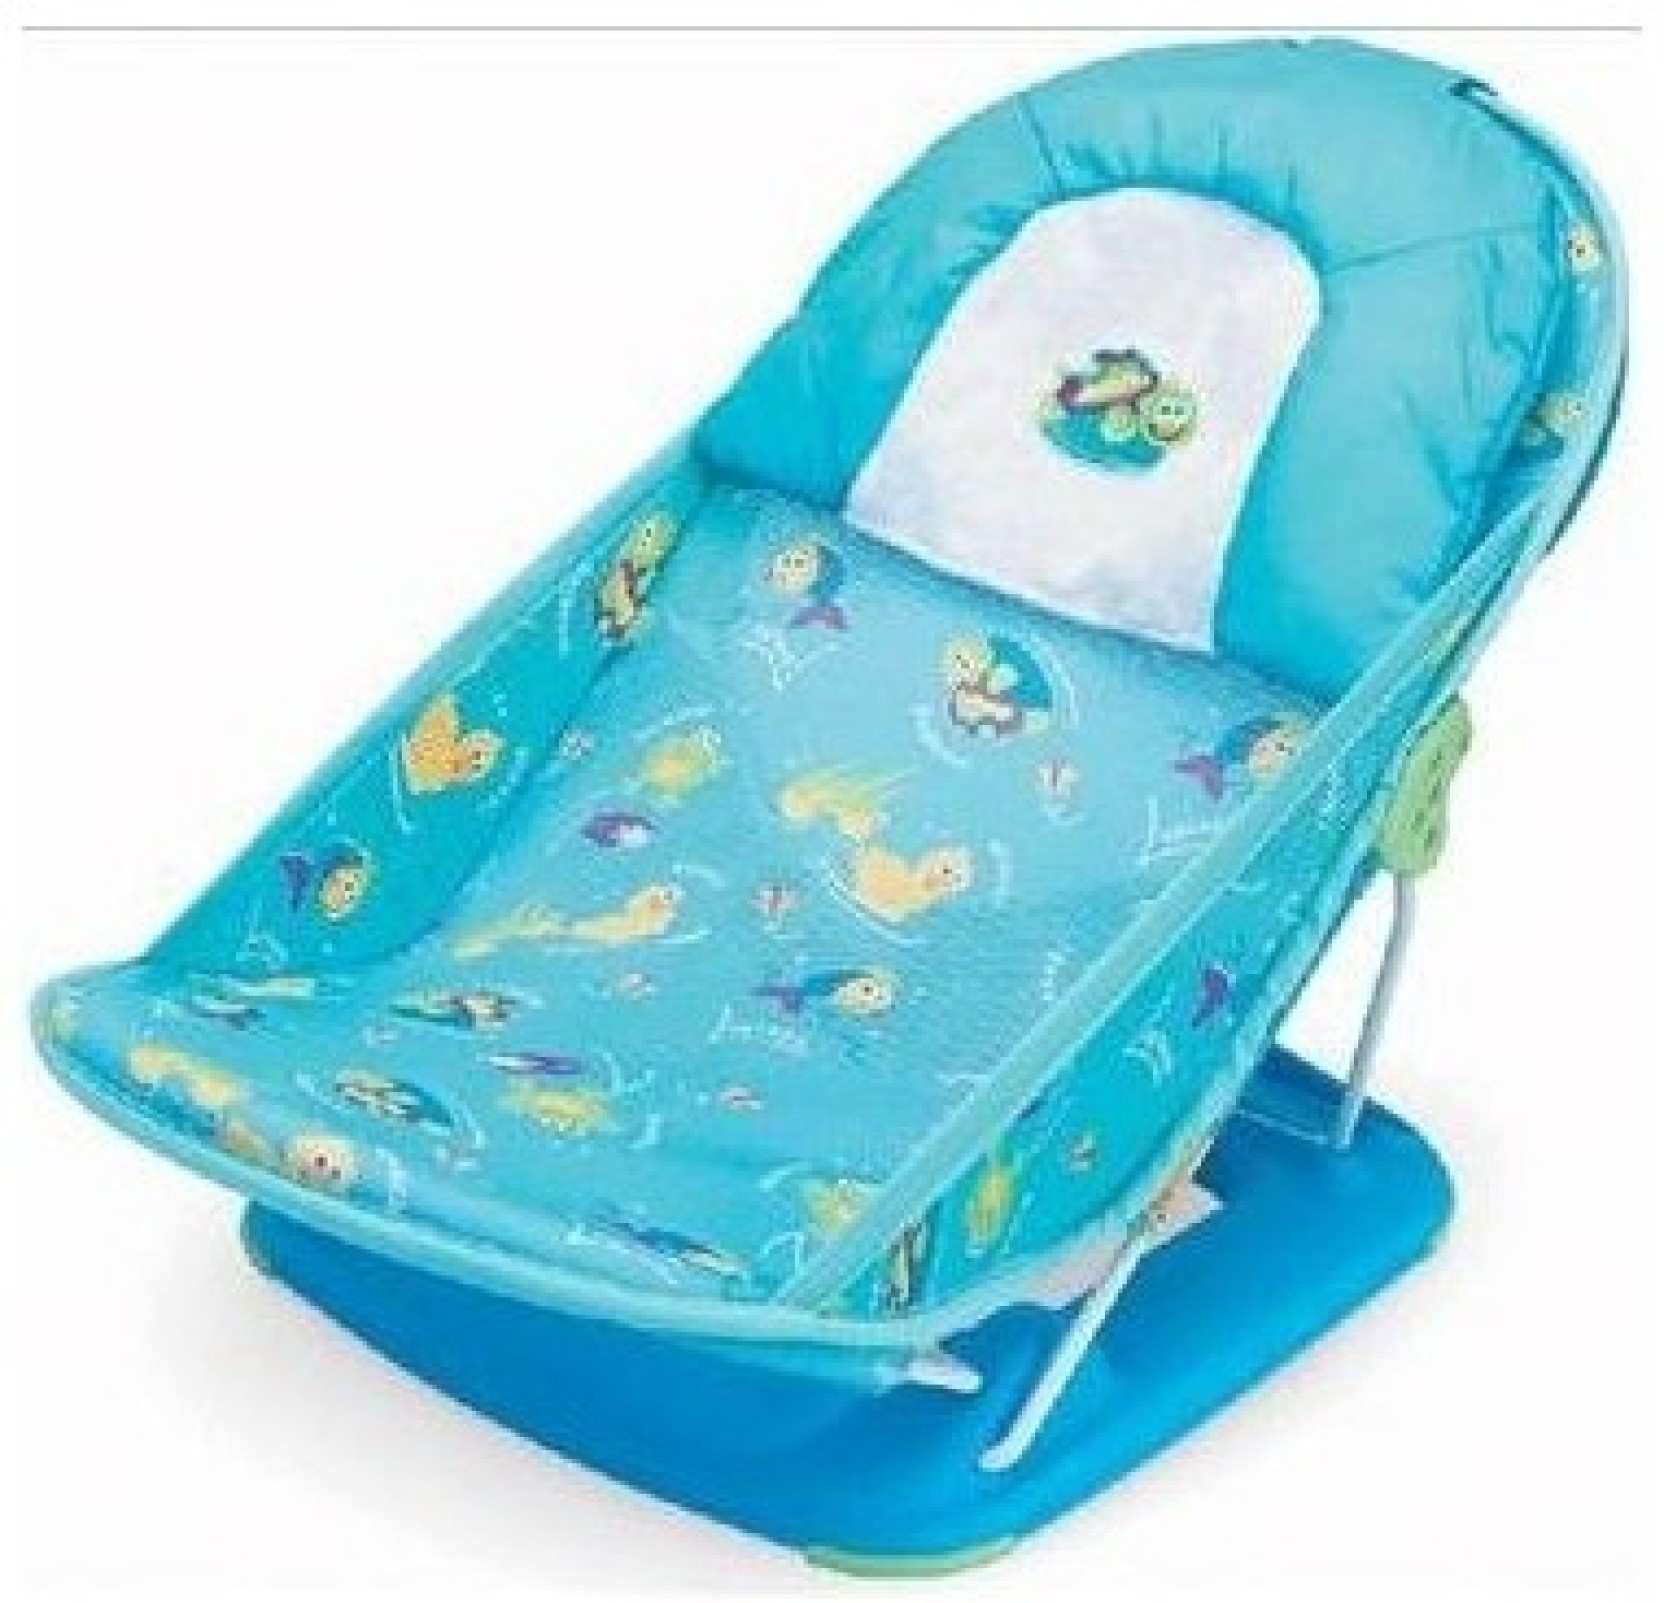 Summer Infants Deluxe Comfort Bather Baby Bath Seat Price in India ...